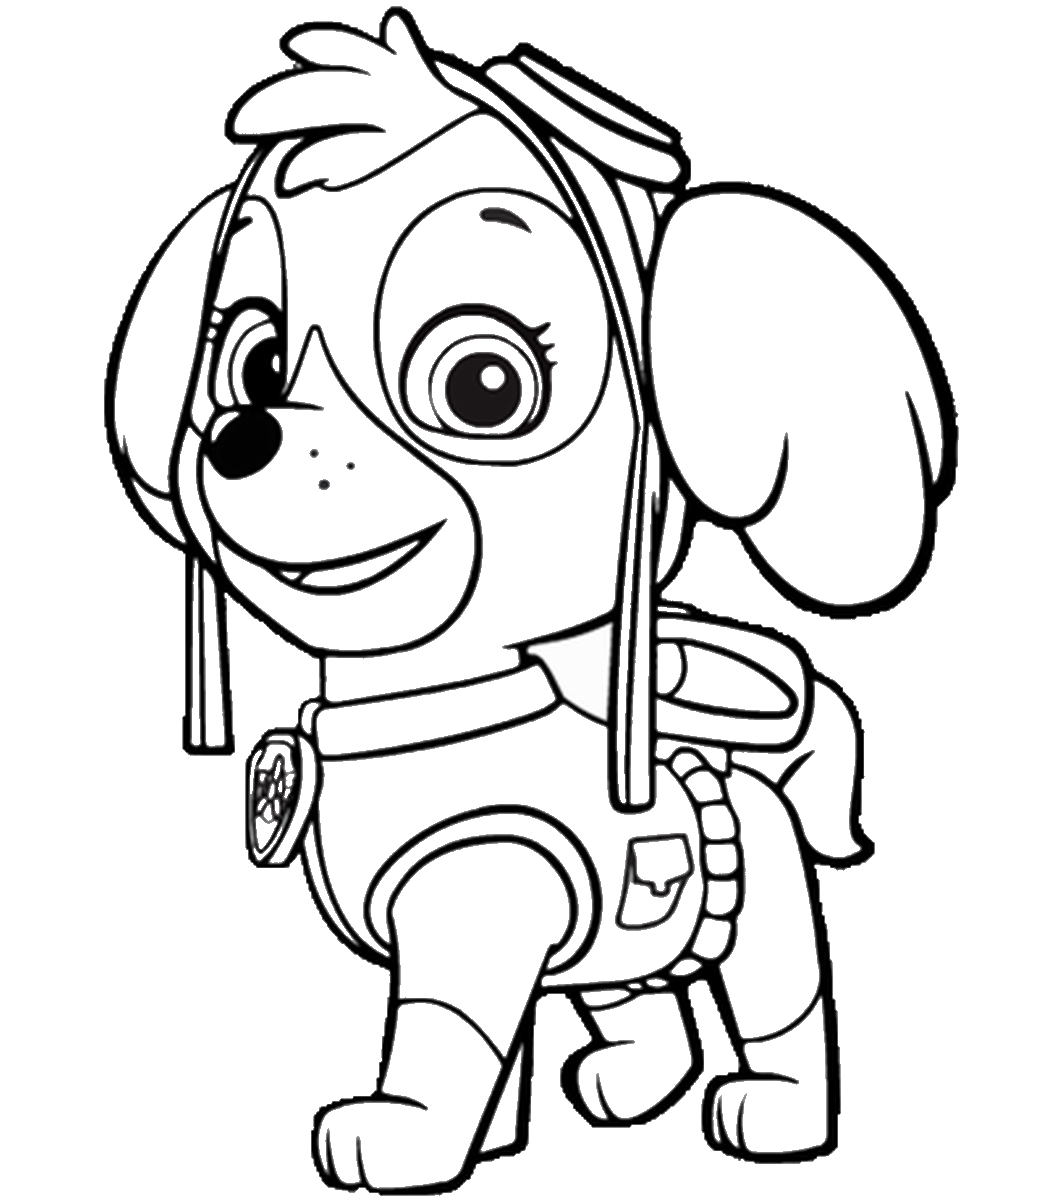 paw patrol free coloring pages printable marshall paw patrol coloring lesson kids coloring page coloring pages free patrol printable paw